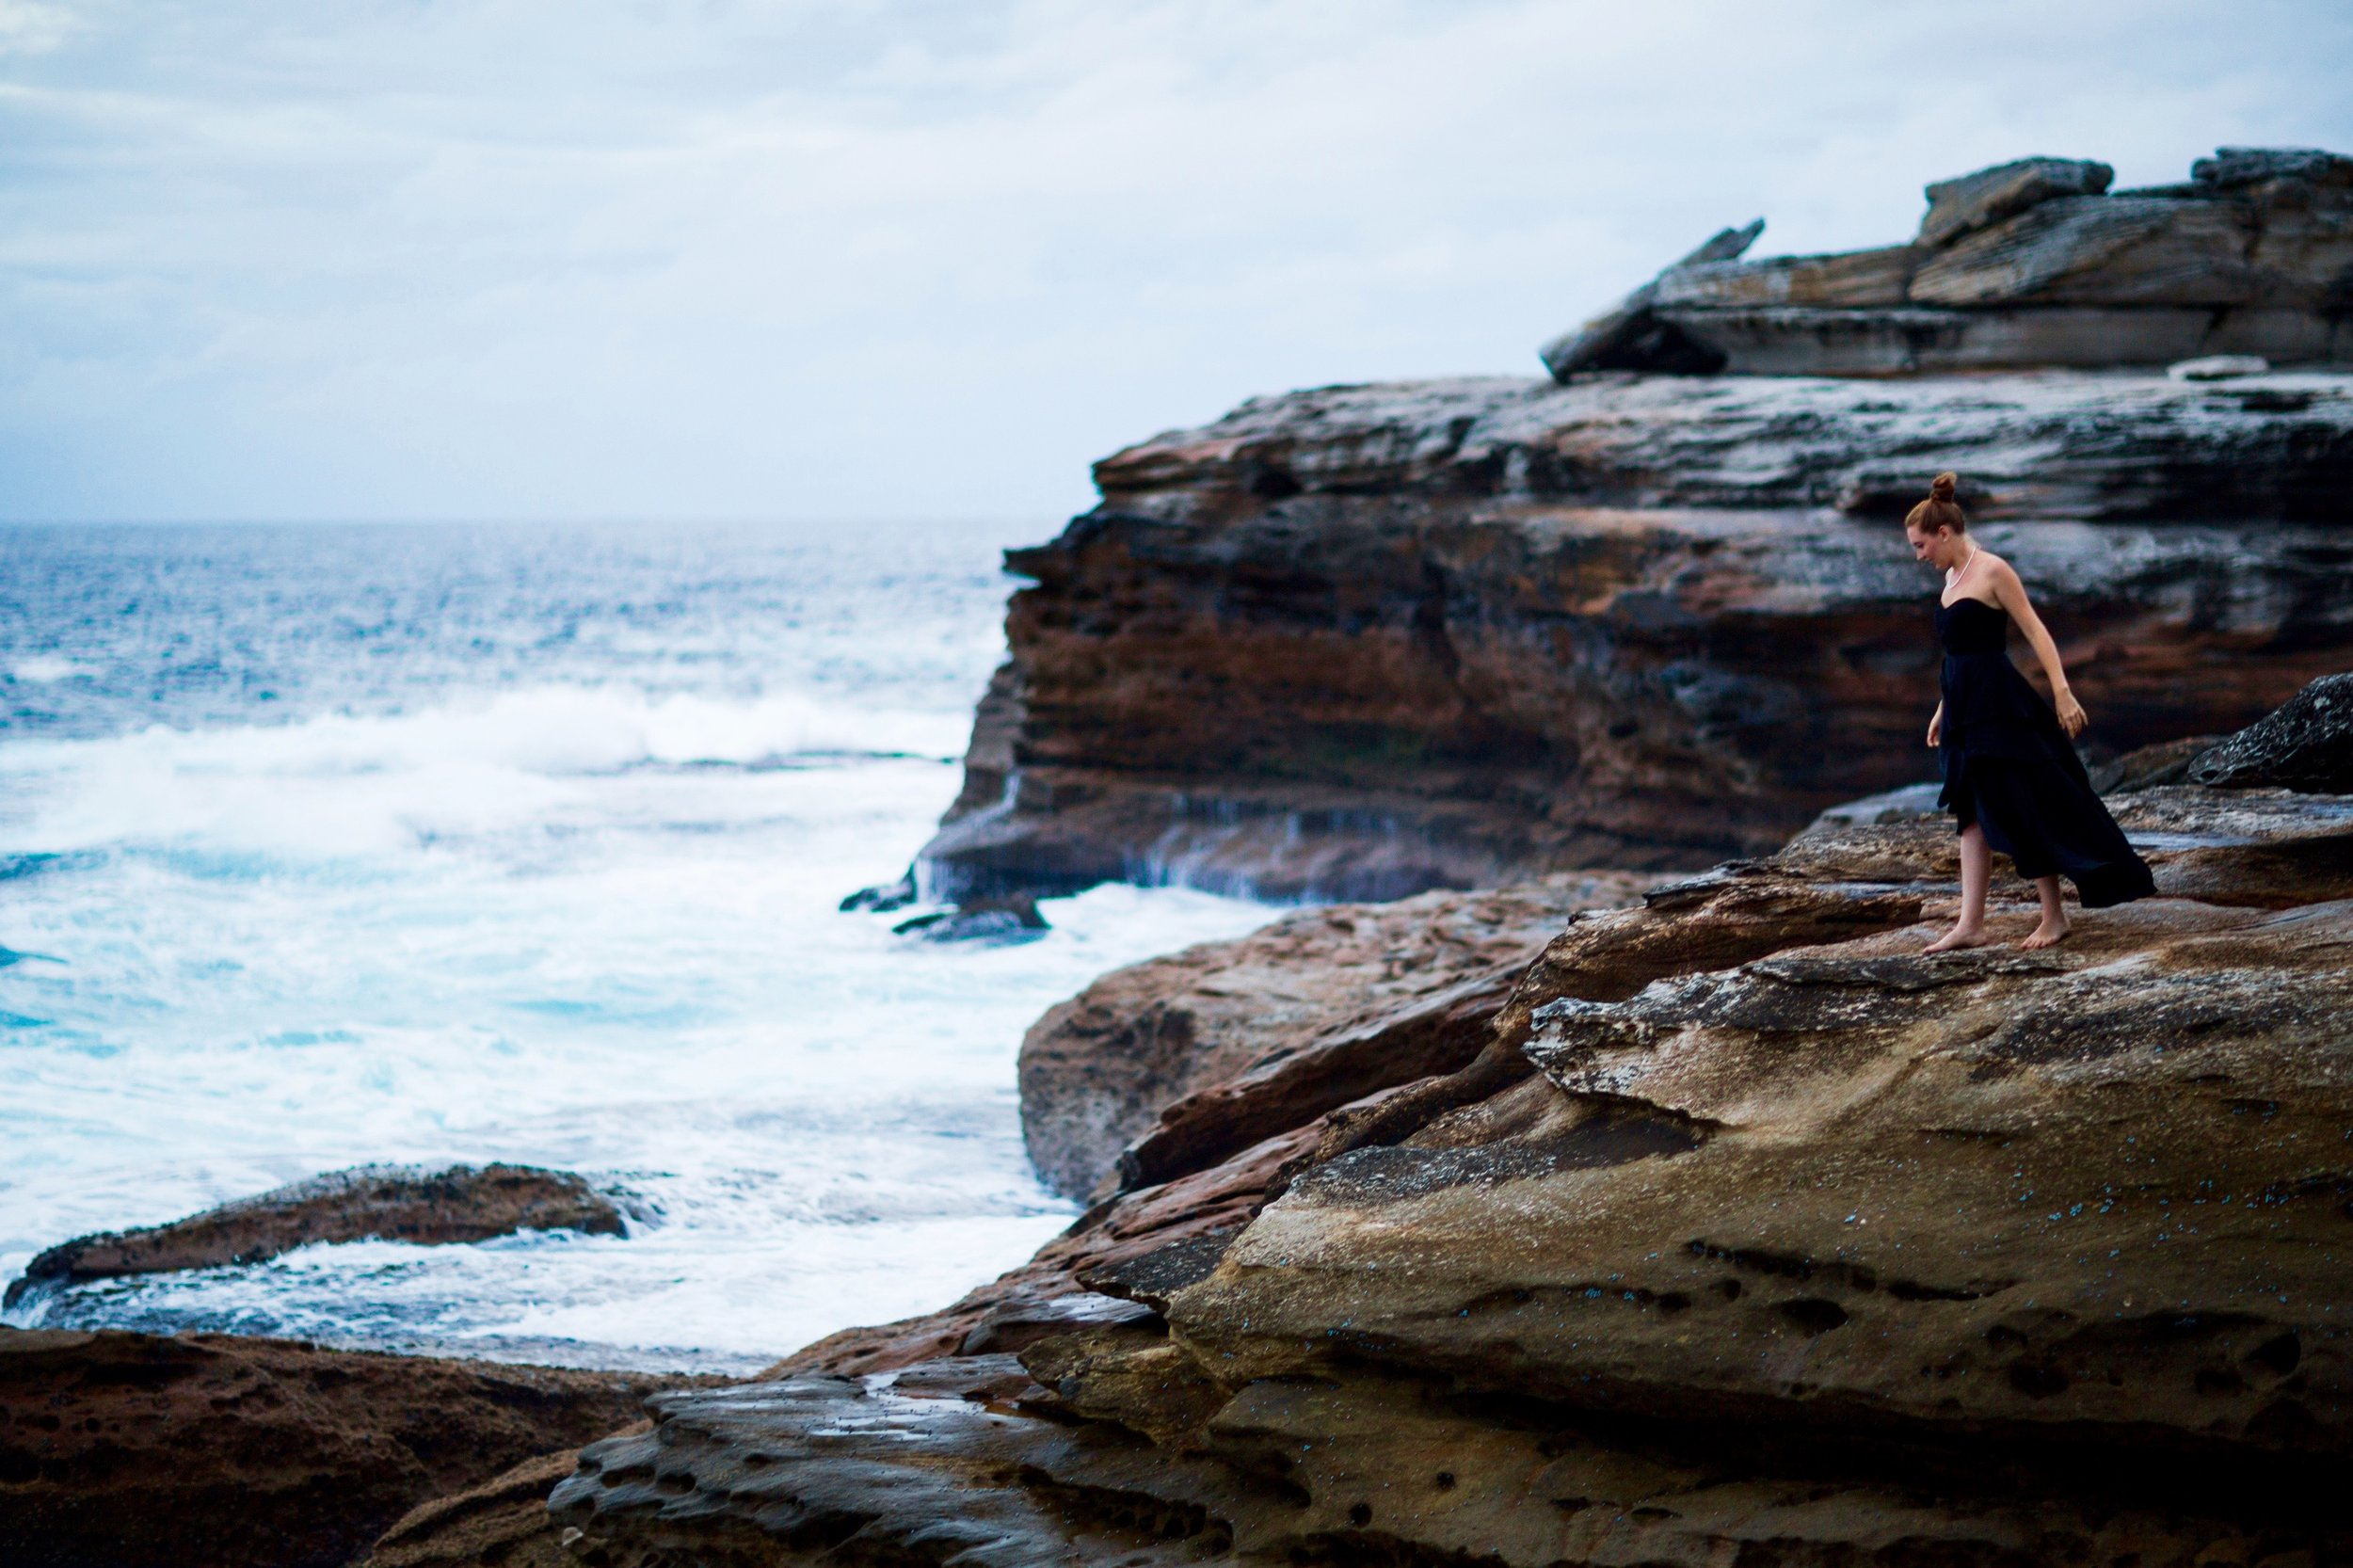 On the cliffs at Little Bay, NSW in 2015